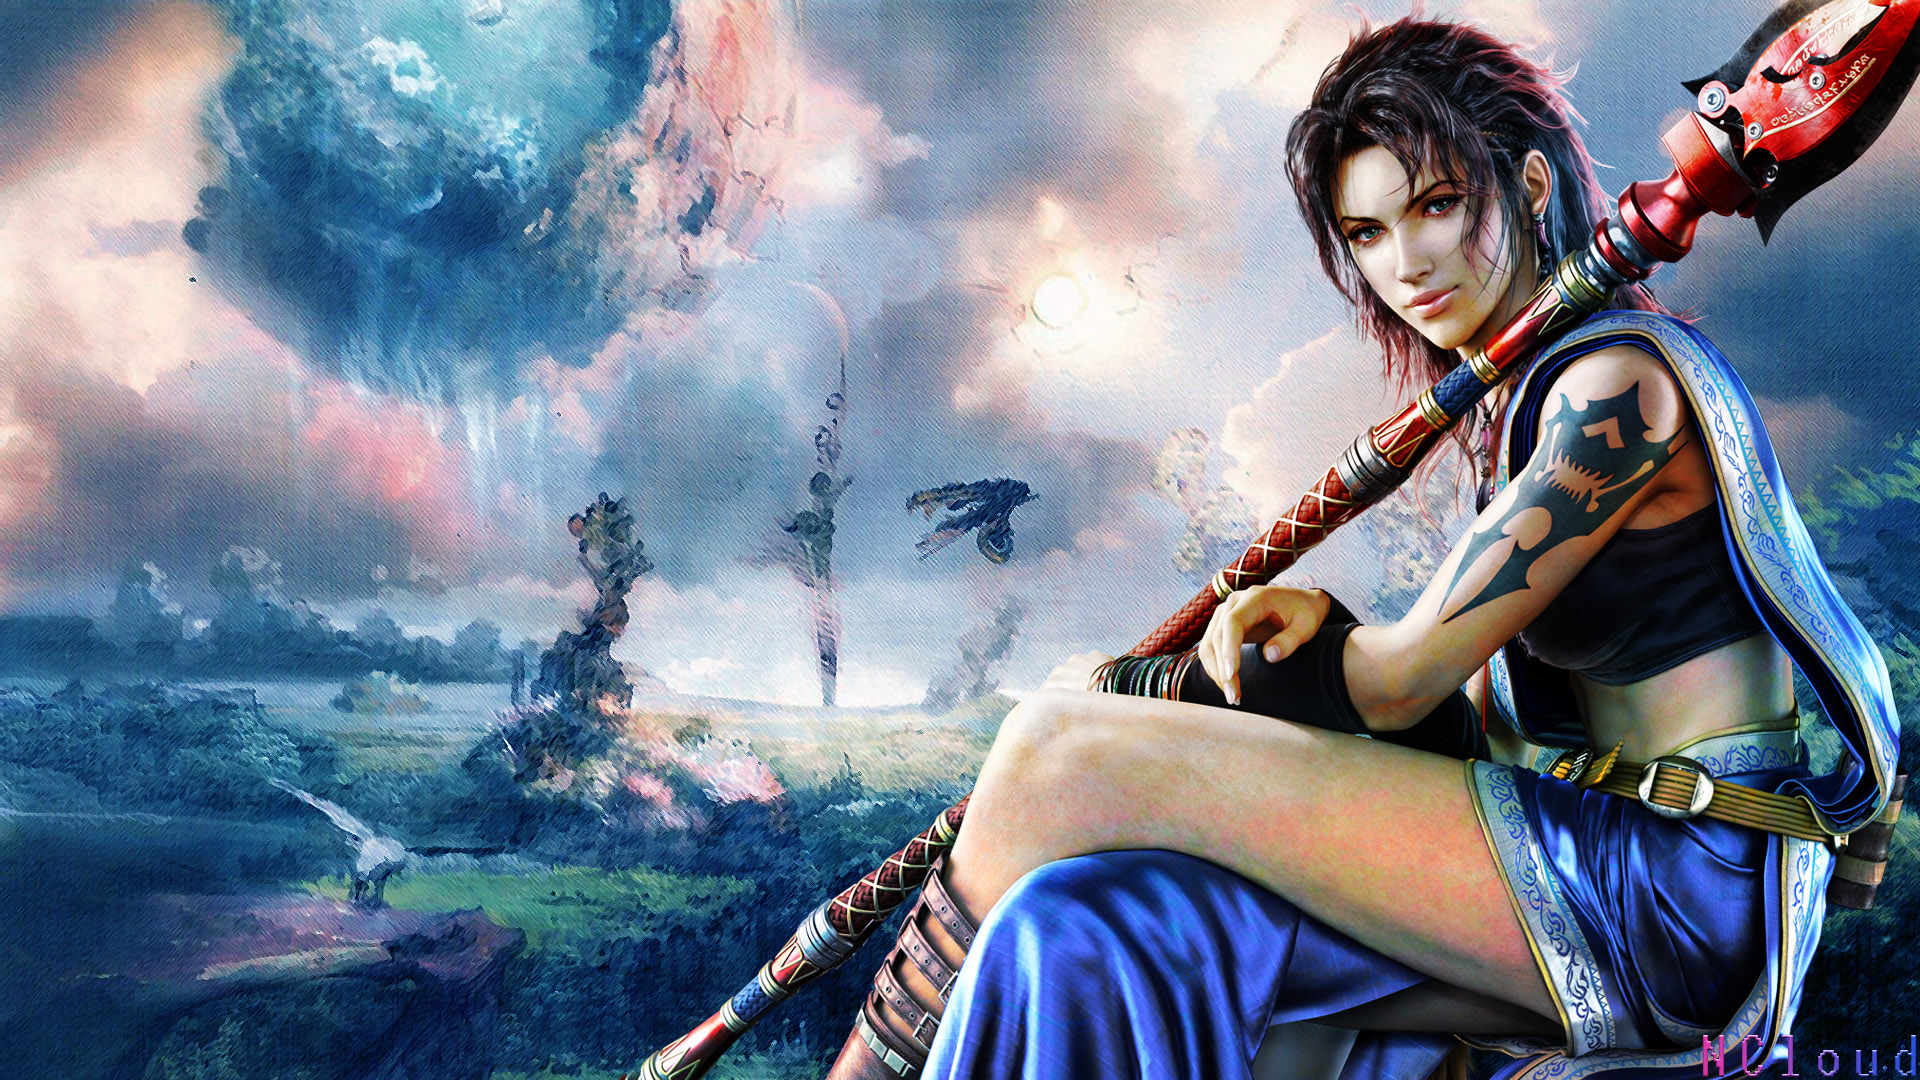 Final Fantasy Xiii Wallpapers 37 Celeb Wallpapers Wallpapers